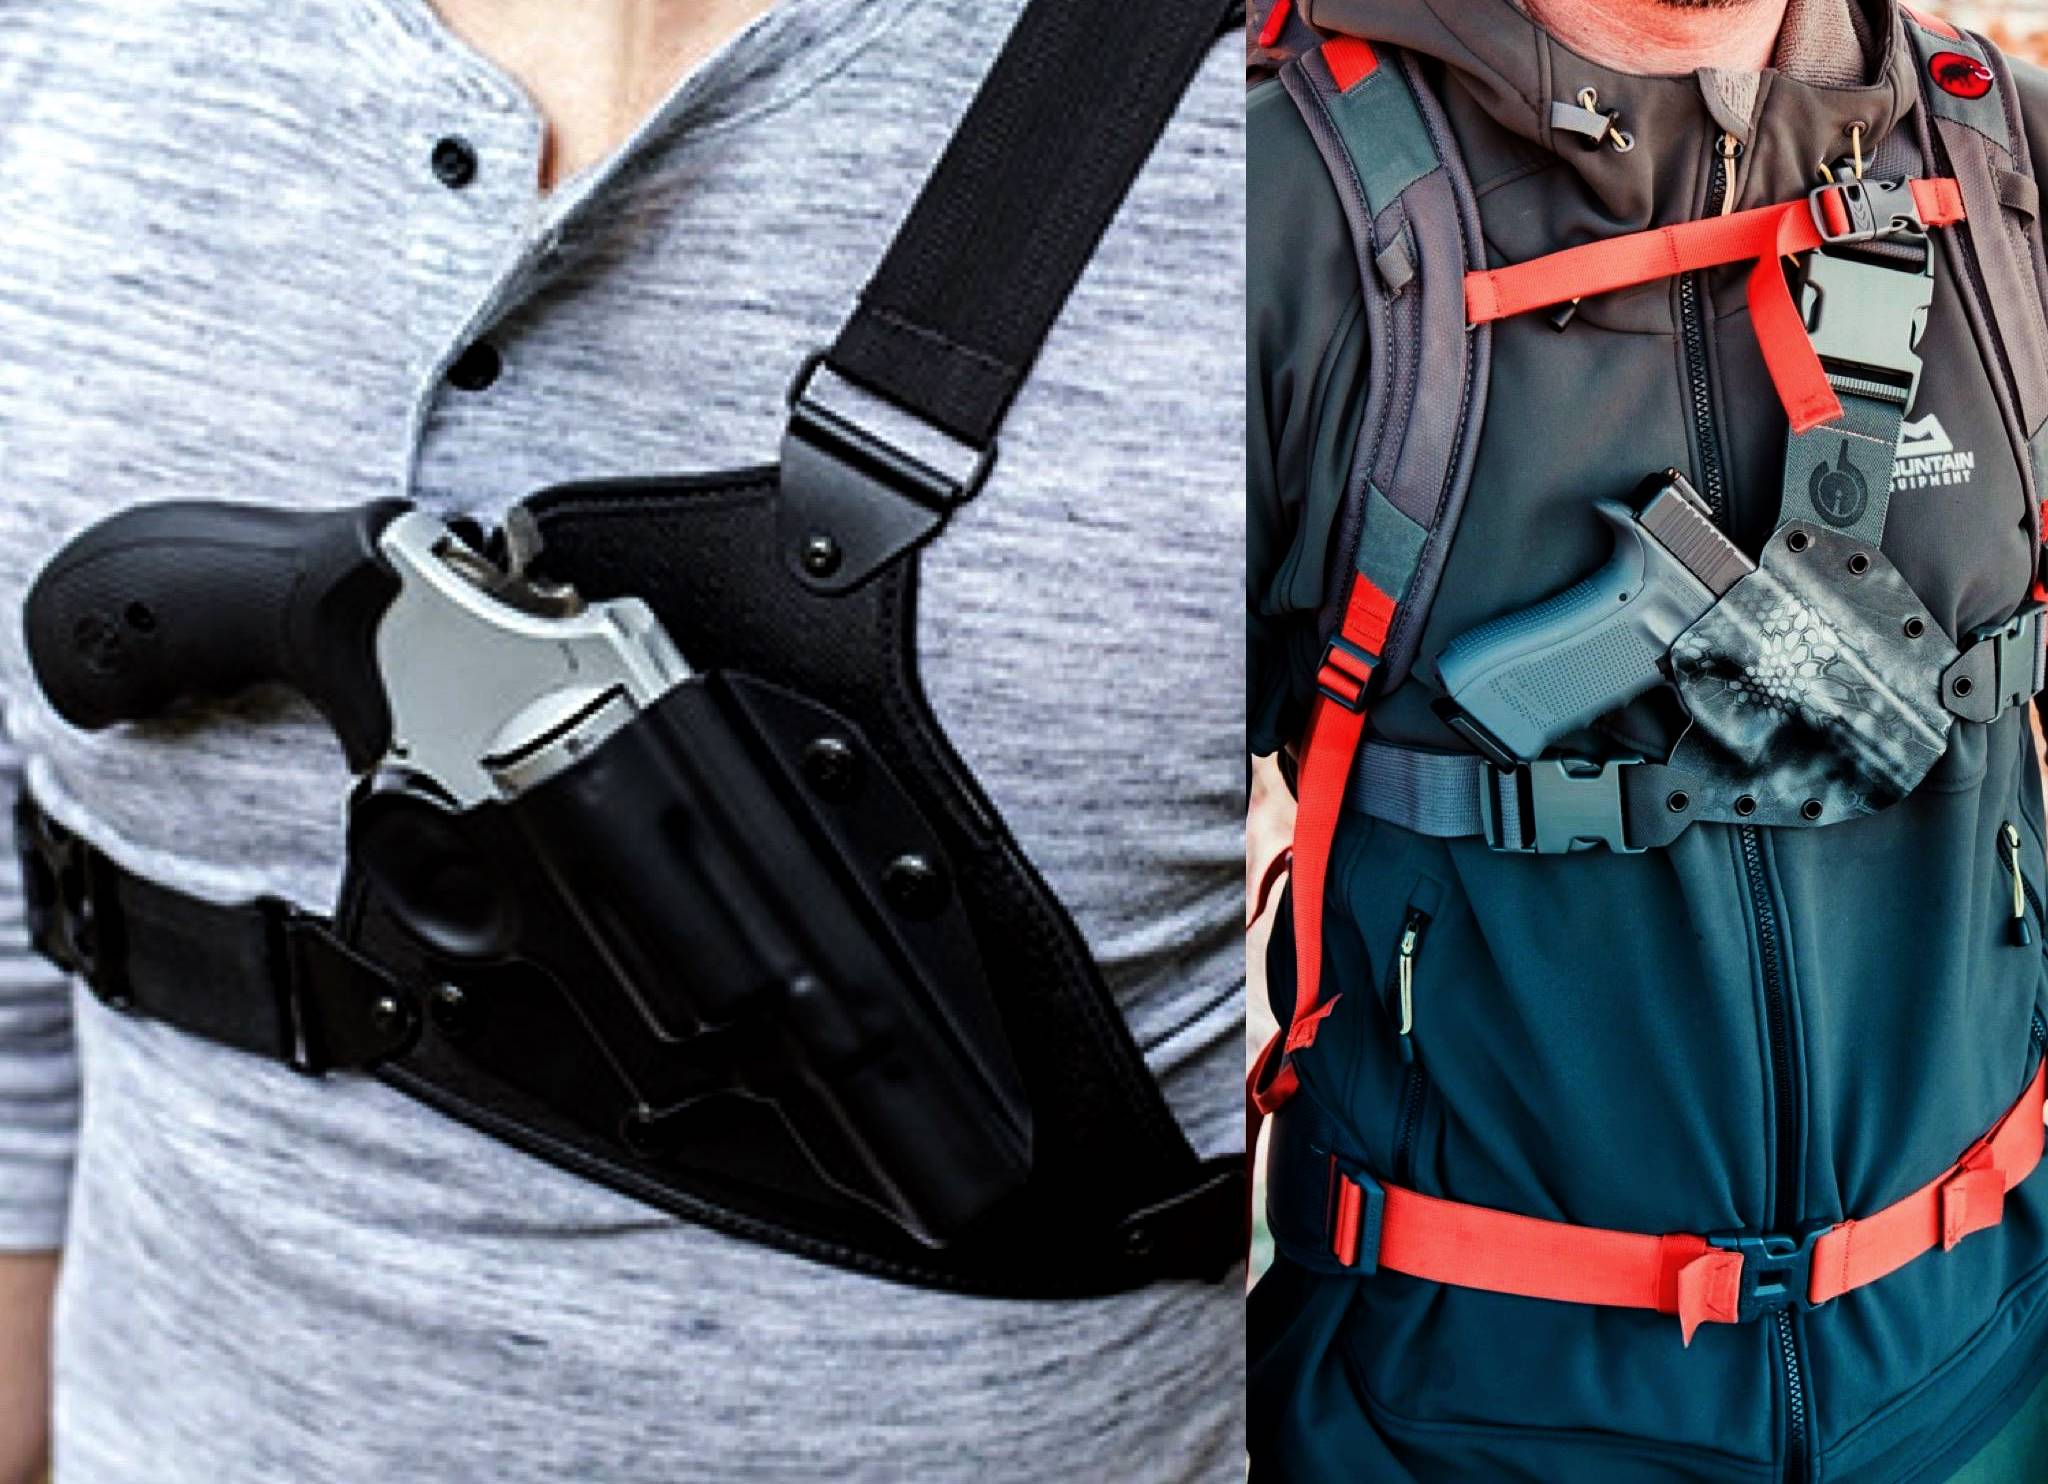 What To Expect When Backpacking With A Firearm